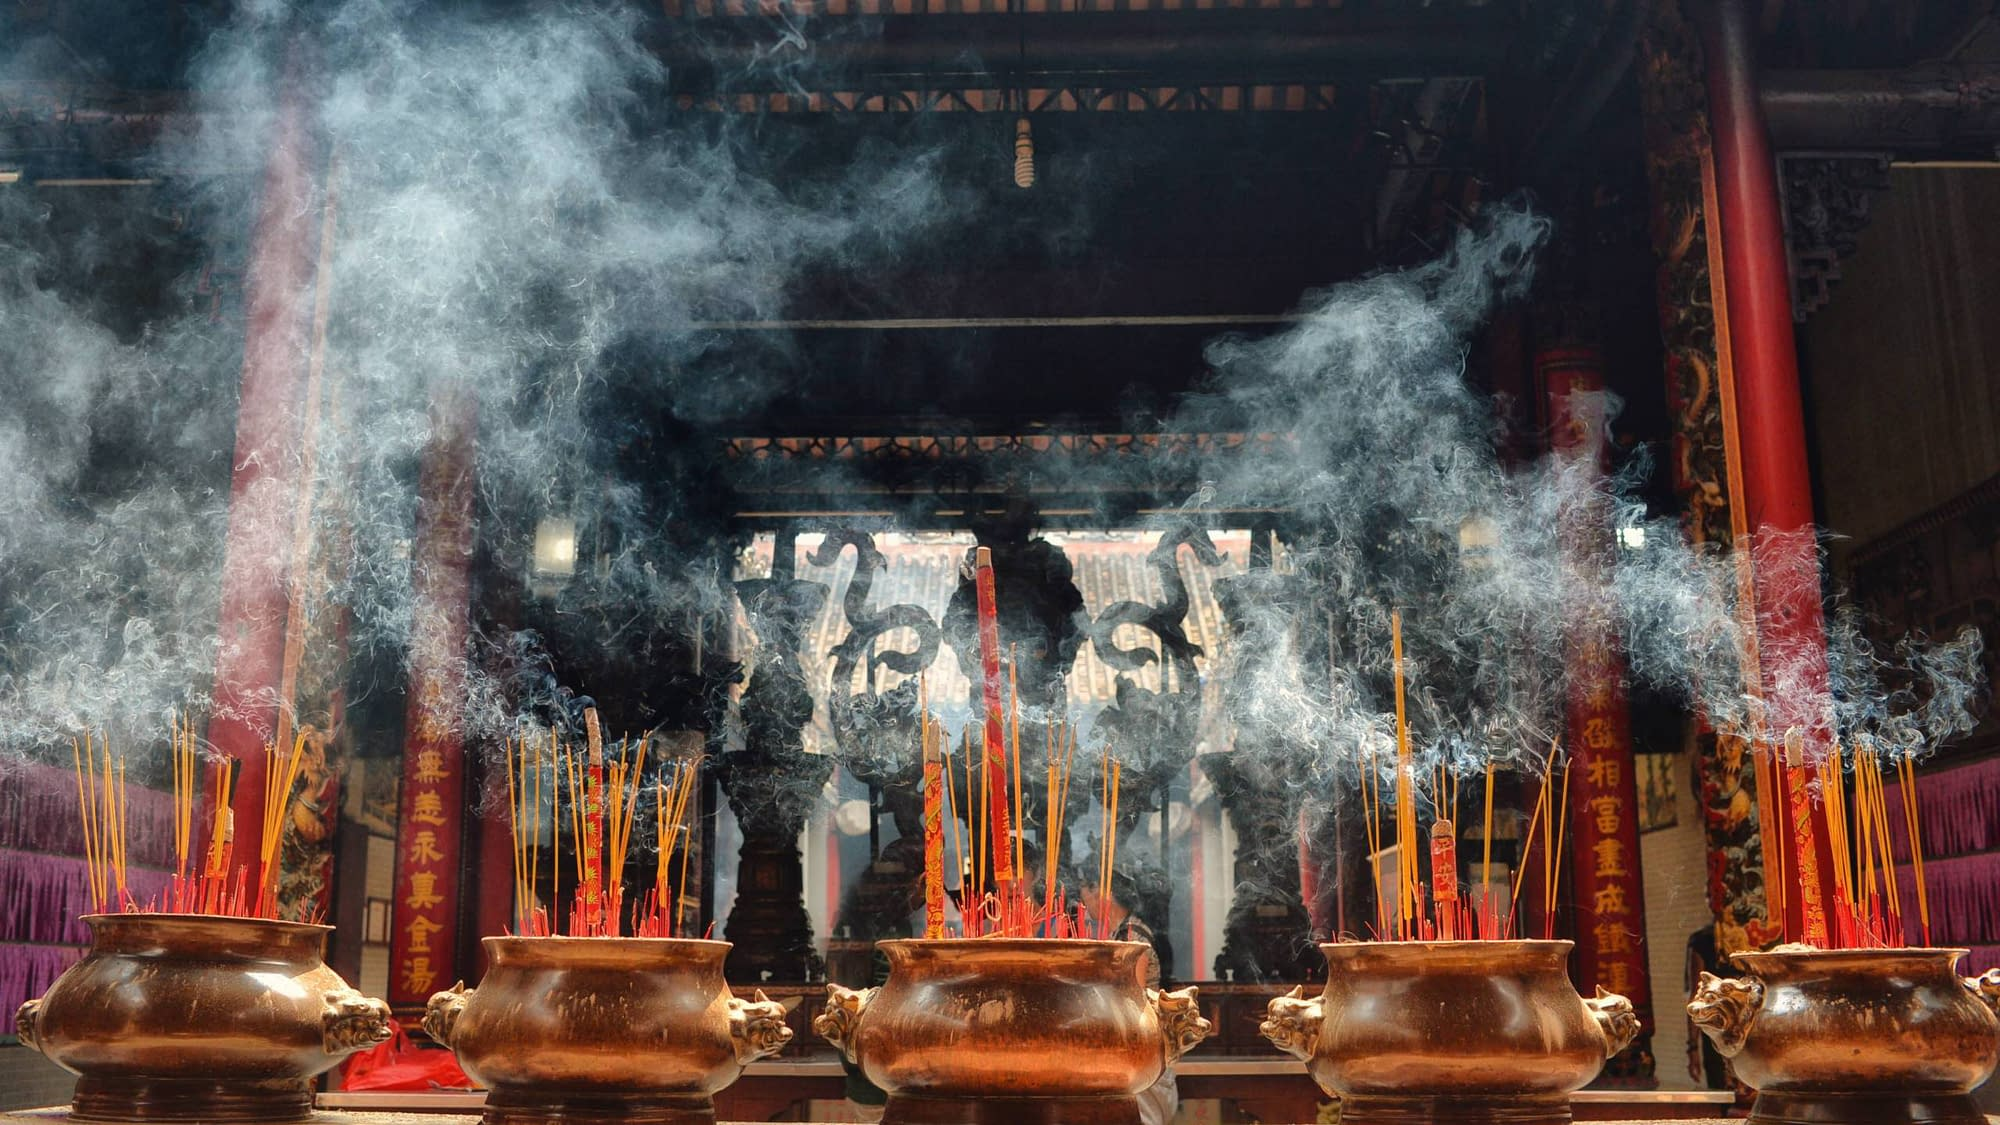 A Vietnamese Temple with Incense